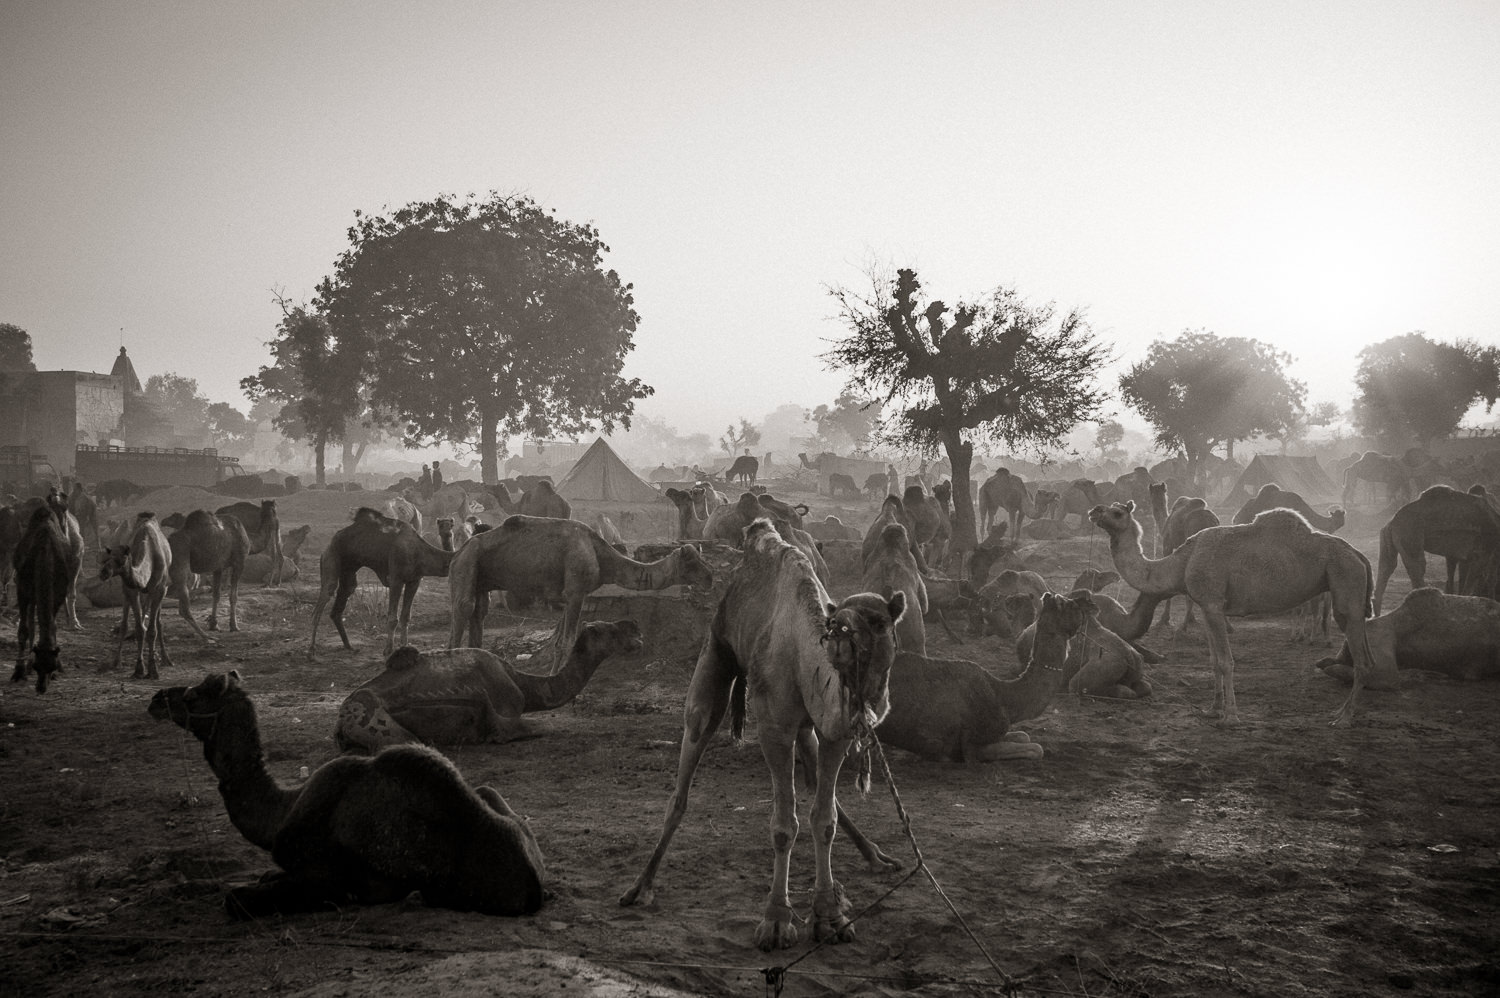 Camel fair, Rajastan, India- Fine Art Black and White photography. Glen Green Photography